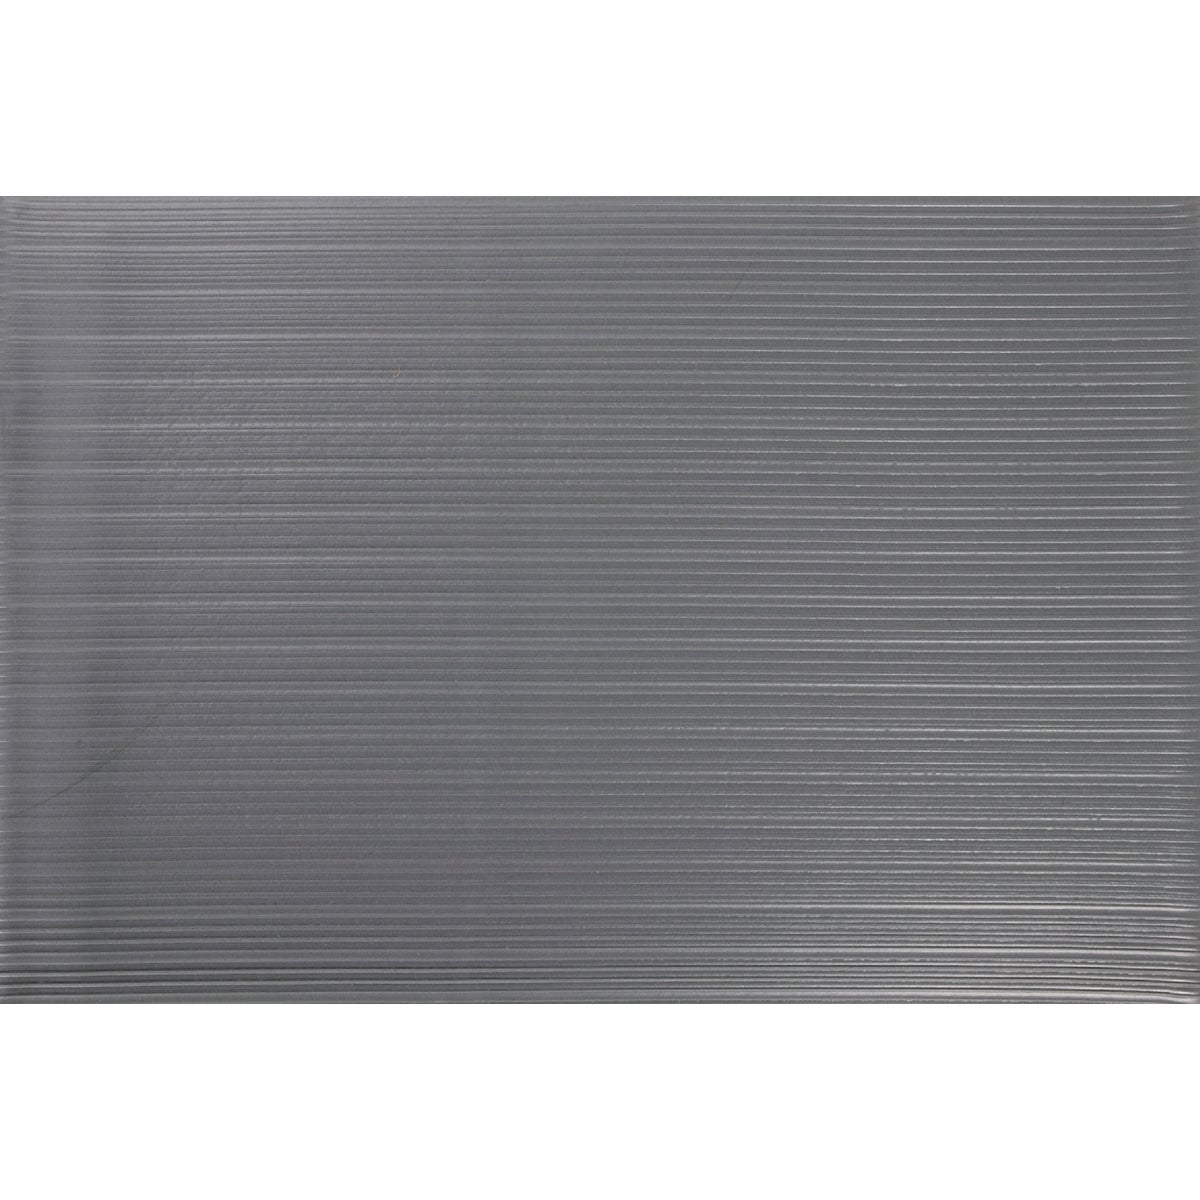 SOFT FOOT STND GREY MAT